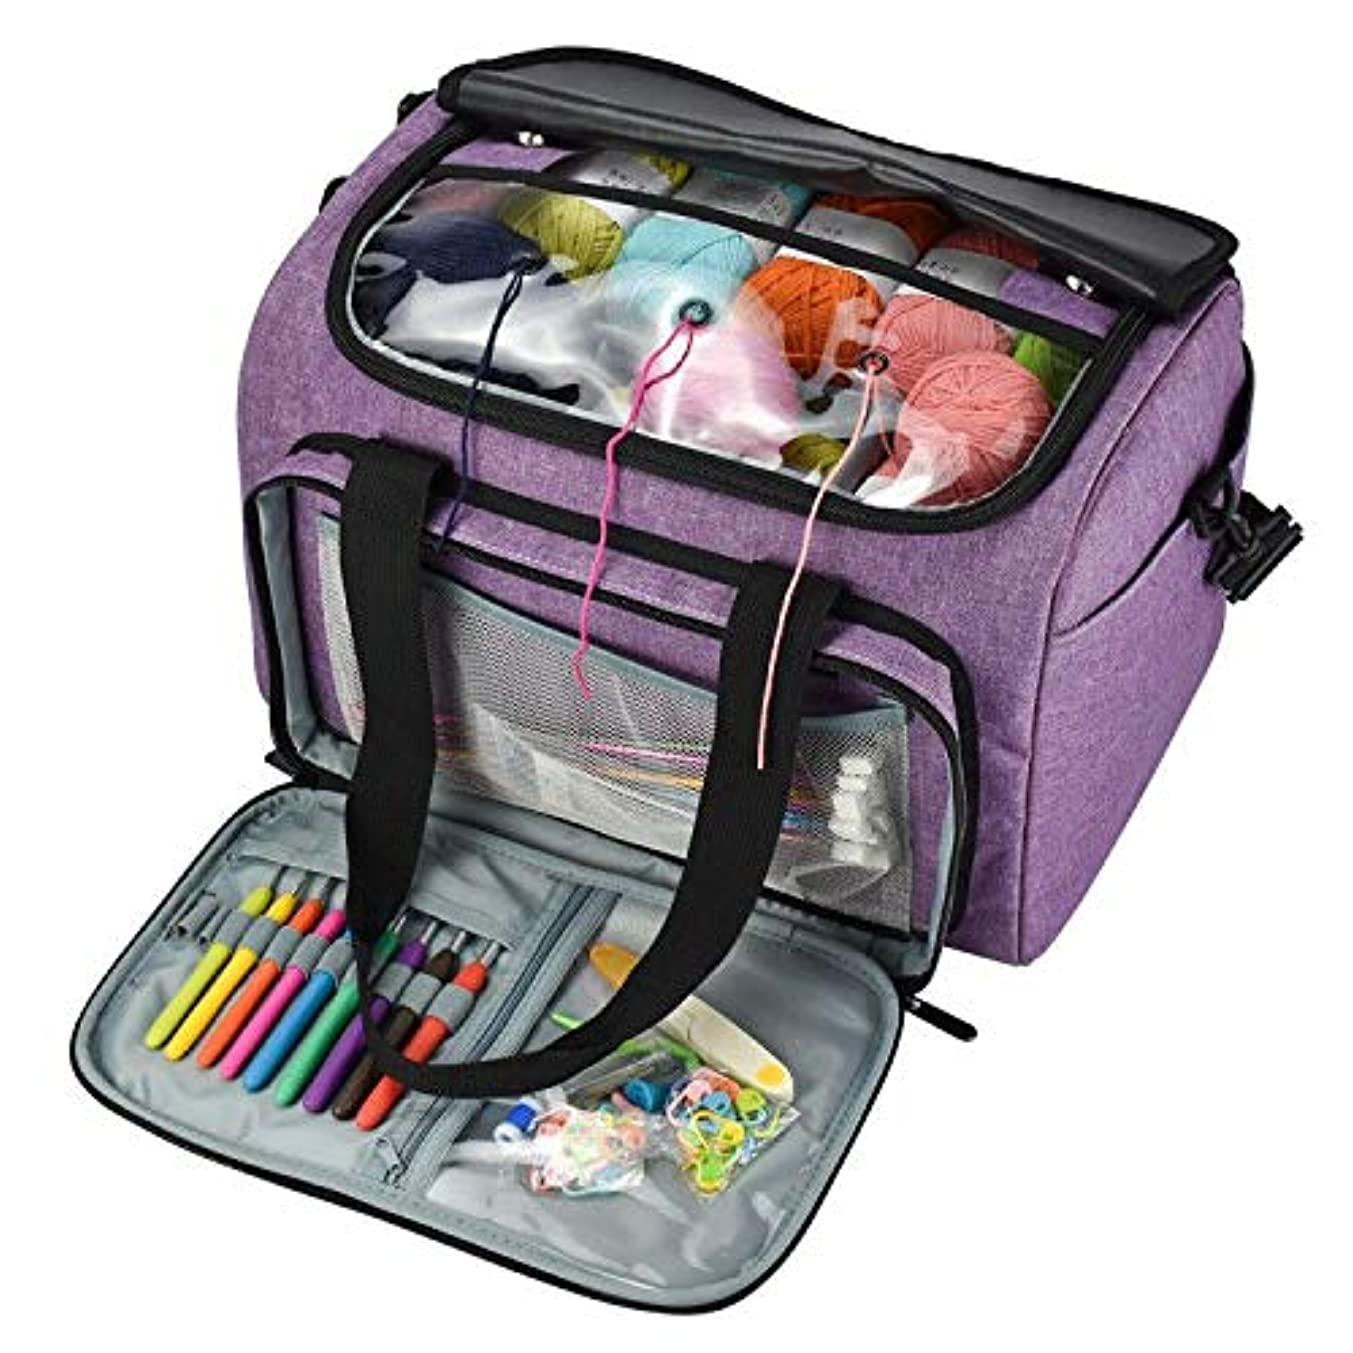 SUNTQ Yarn Storage Knitting Bag with Inner Divider for Yarn and Unfinished Project, Easy to Carry Crochet Hooks, Knitting Needles and Accessories, High Capacity-No Accessories Included